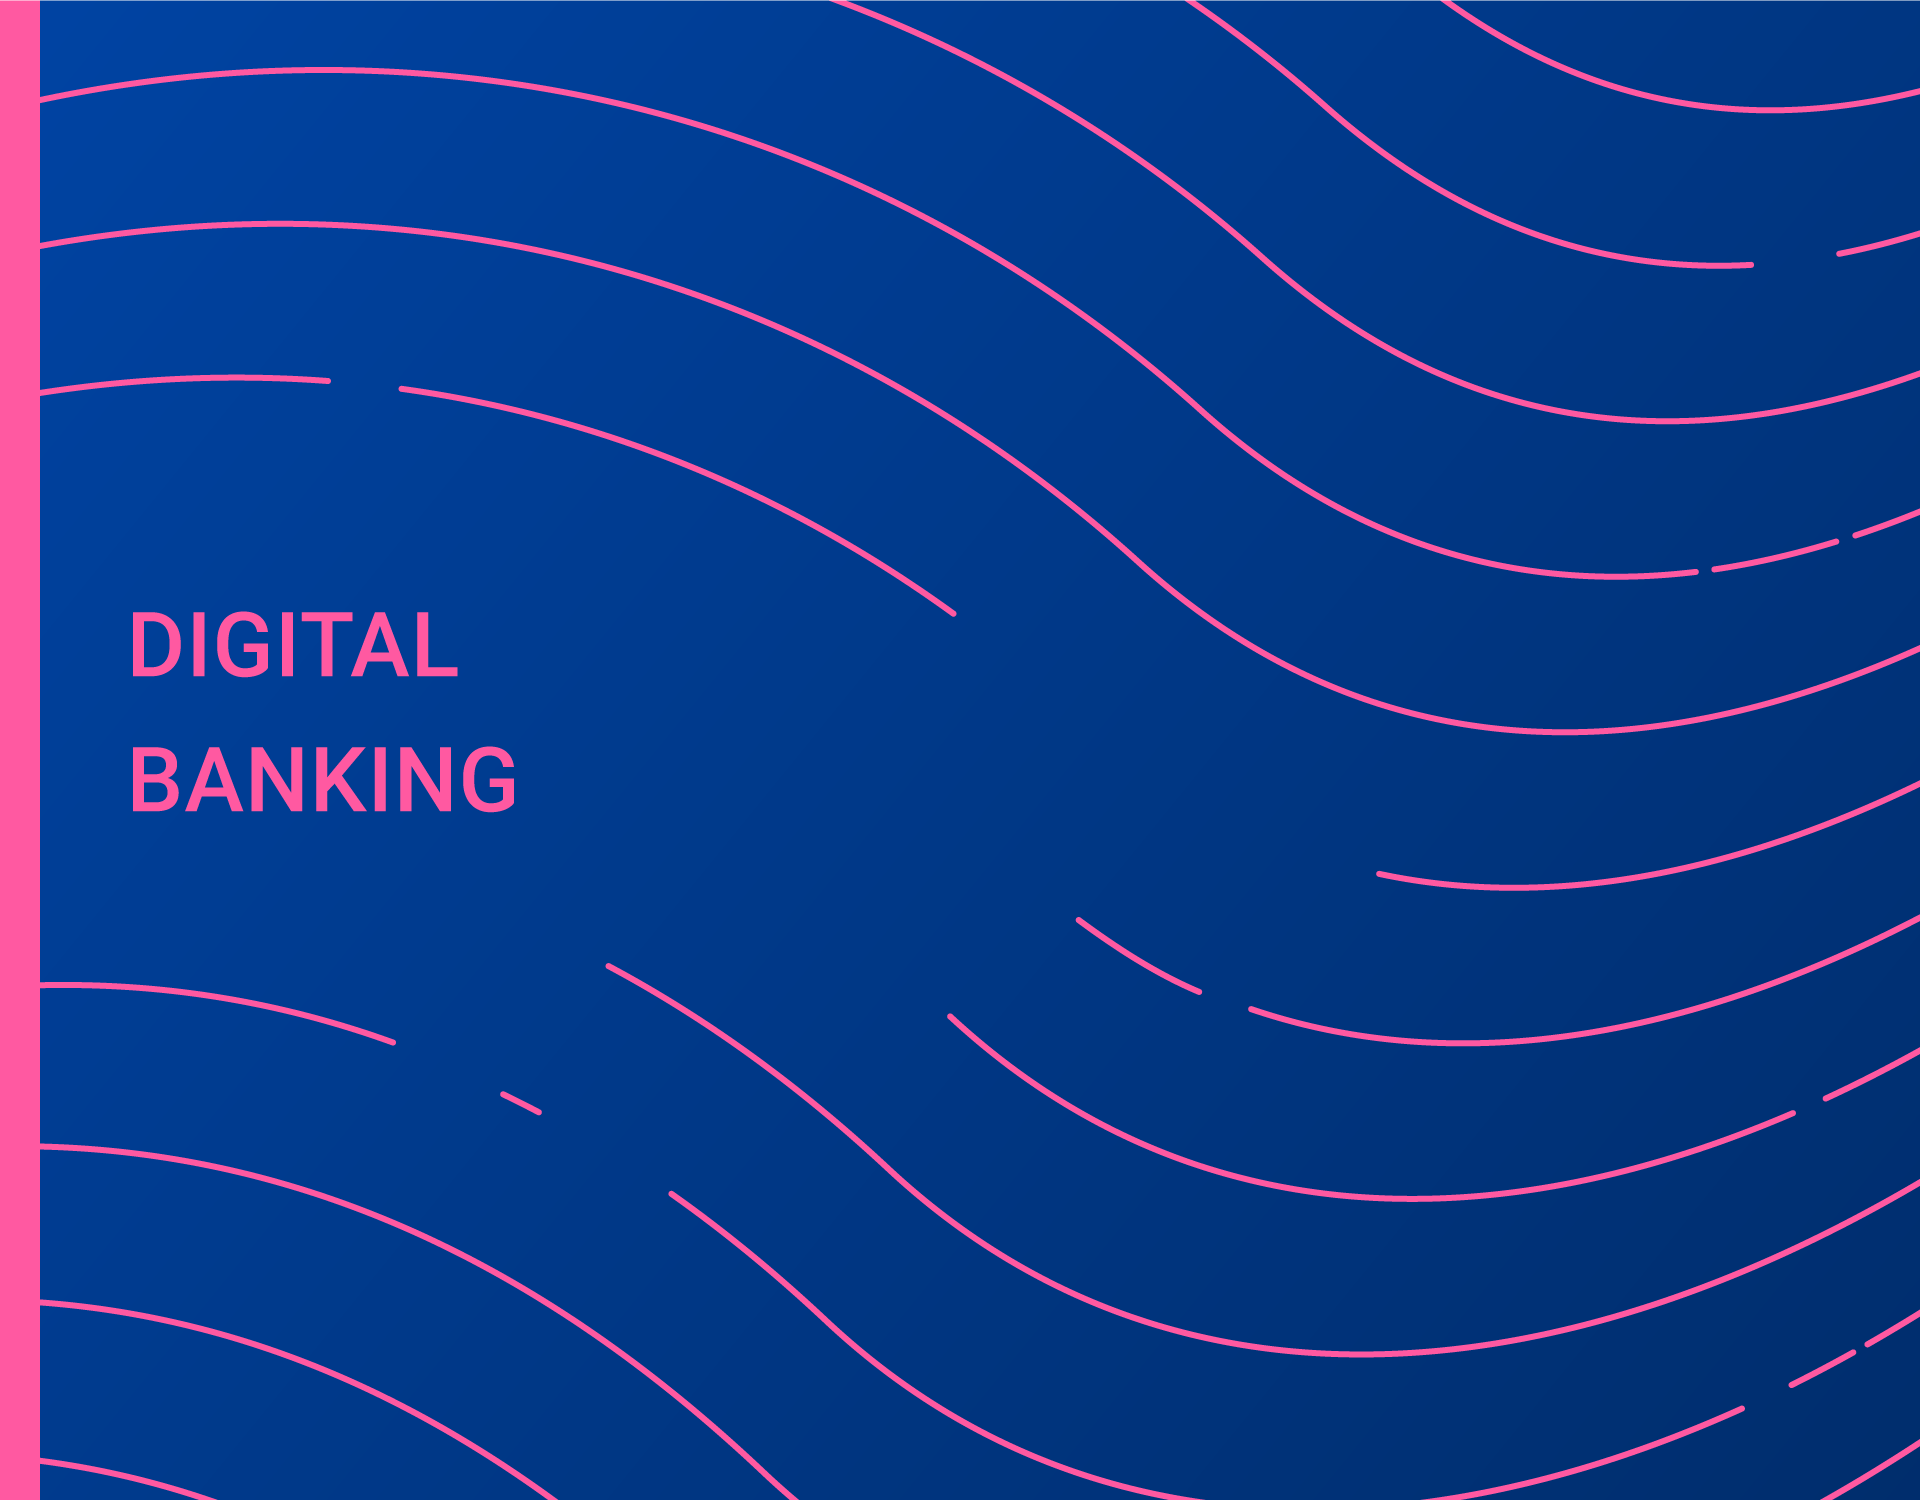 Rapporto Digital Banking 2020 - La nuova frontiera dell'account aggregation